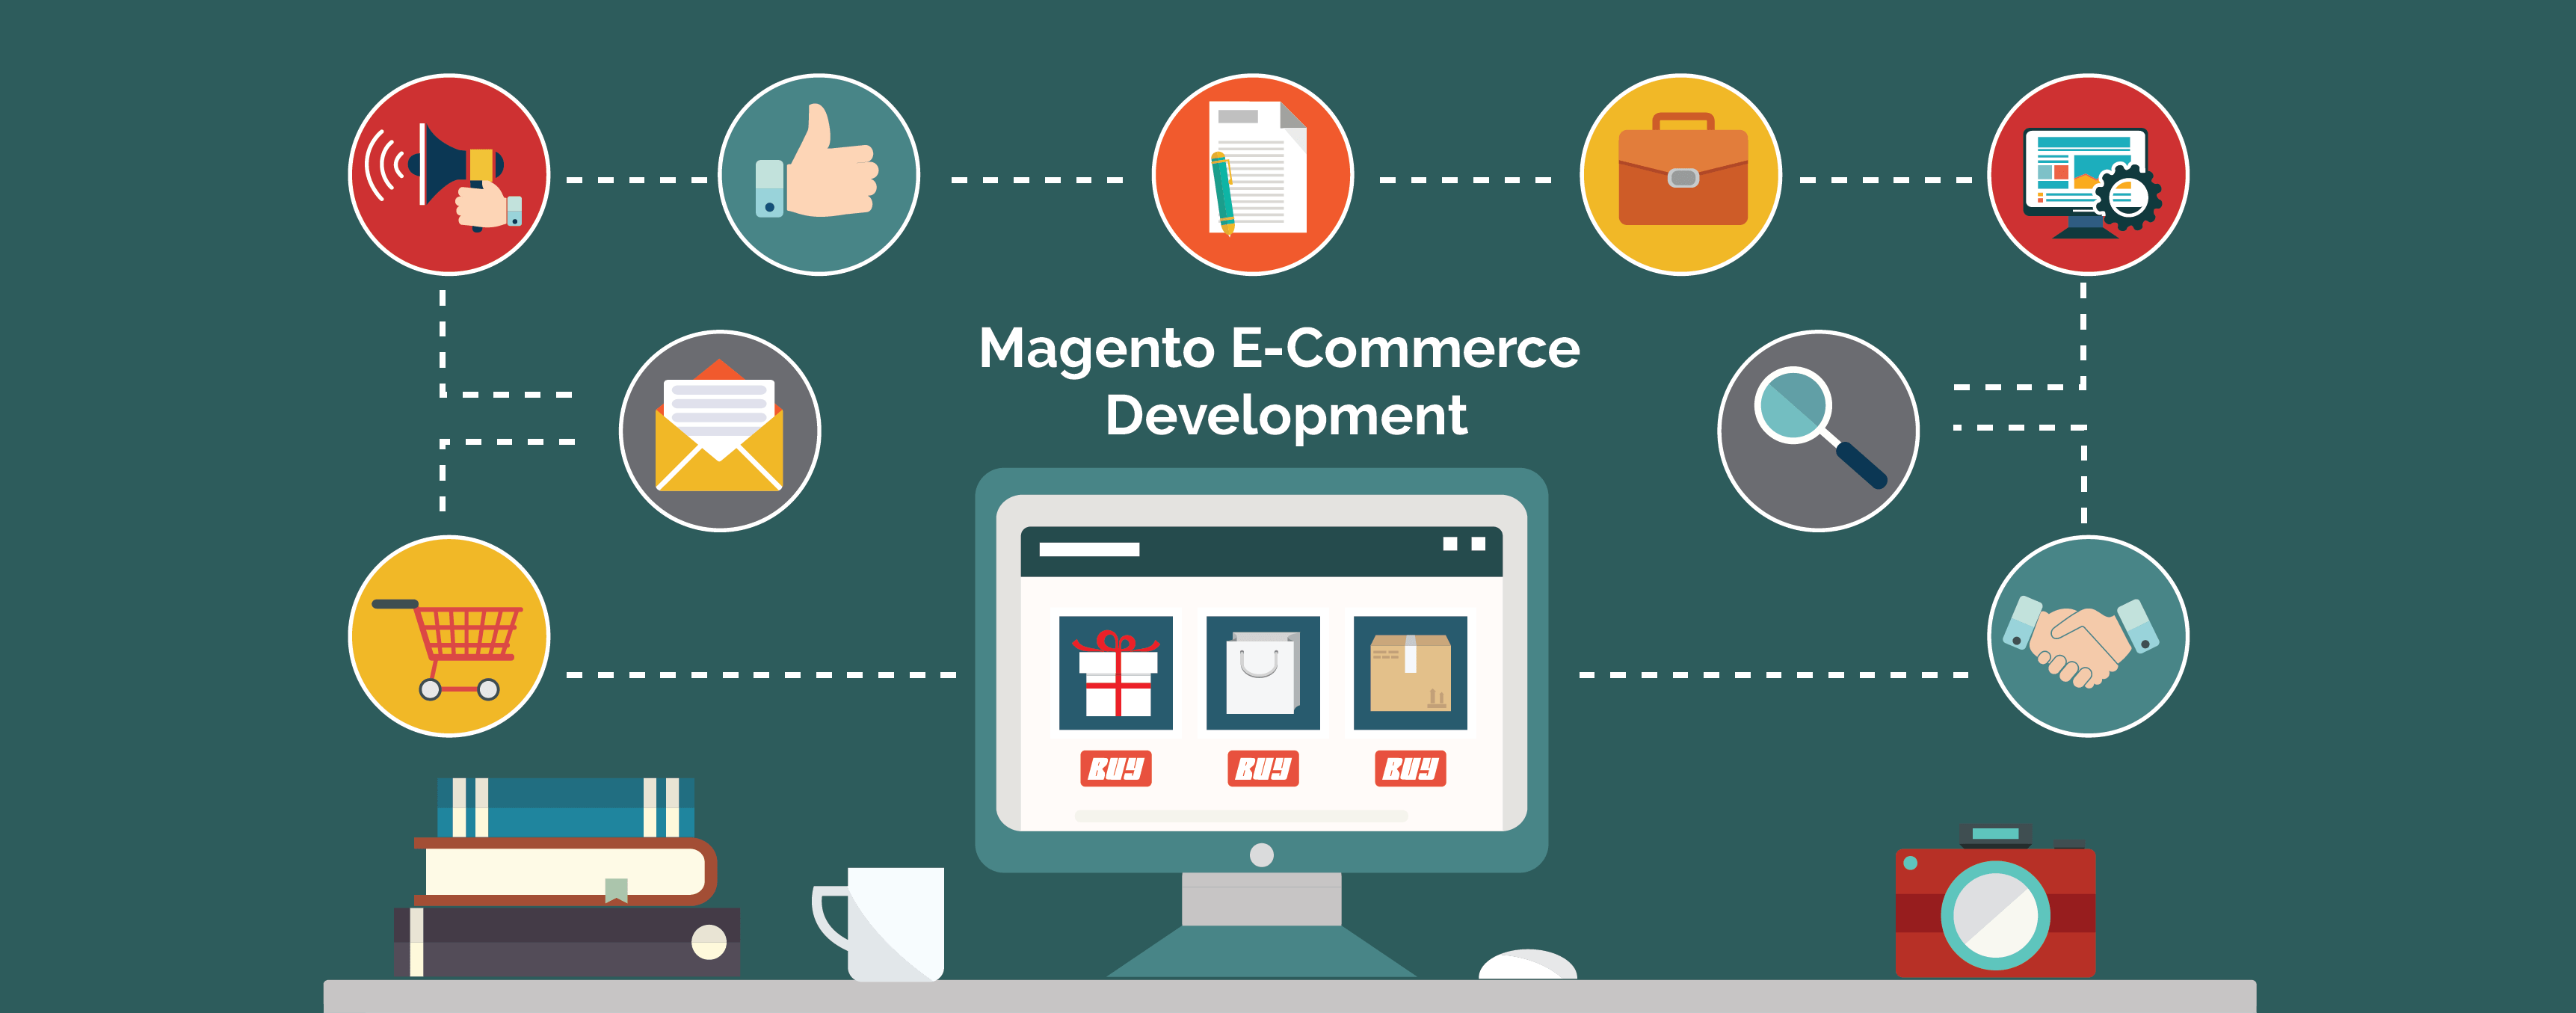 How To Choose The Right Magento Version For E-commerce Platform?